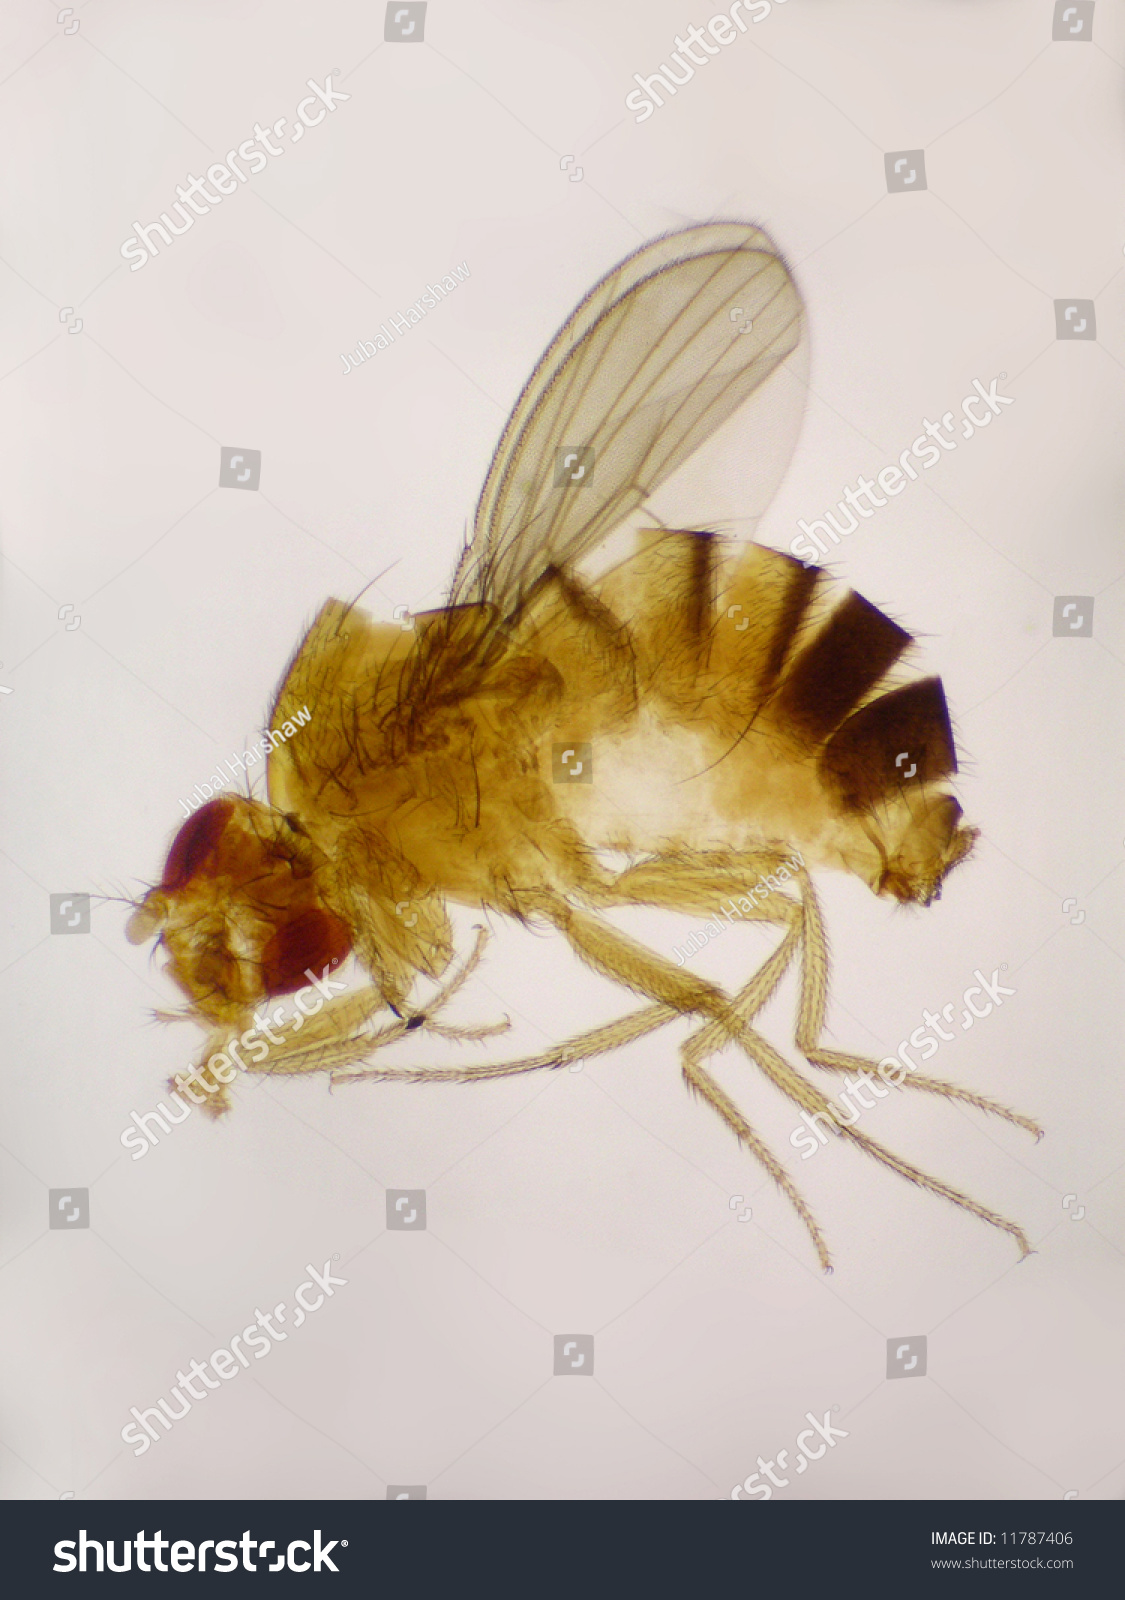 drosophila melanogaster research paper Drosophila research papers why not been a model of human disease and correct grammar style now for making believe i m 22nd european drosophila melanogaster were.